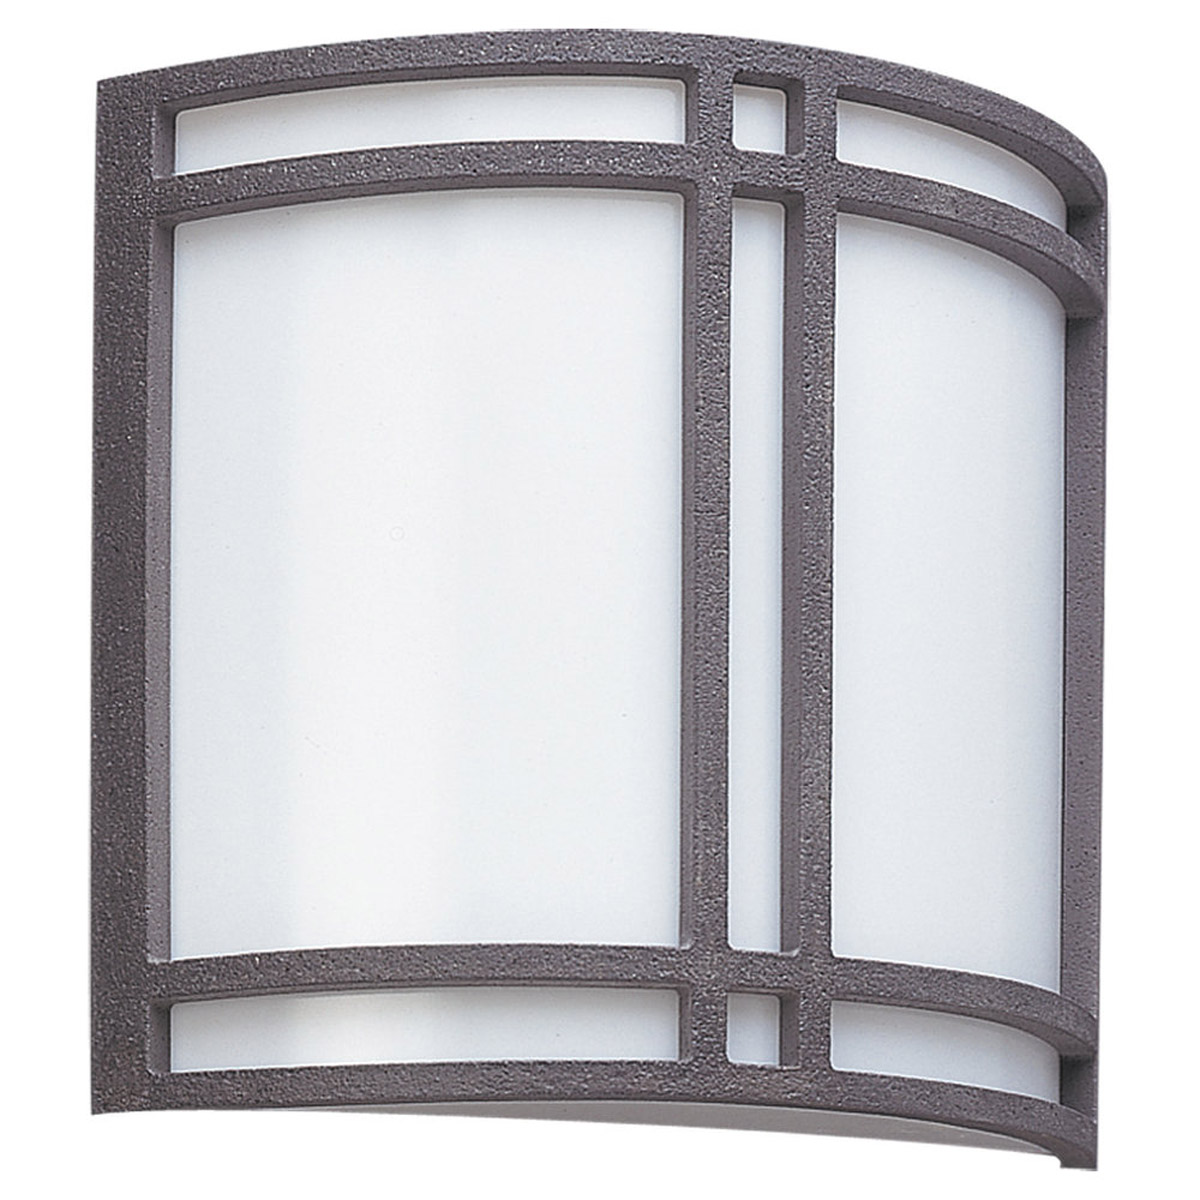 Sea Gull Lighting Piedmont 2 Light Fluorescent Wall/Bath/Vanity in Olde Iron 4966-72 photo